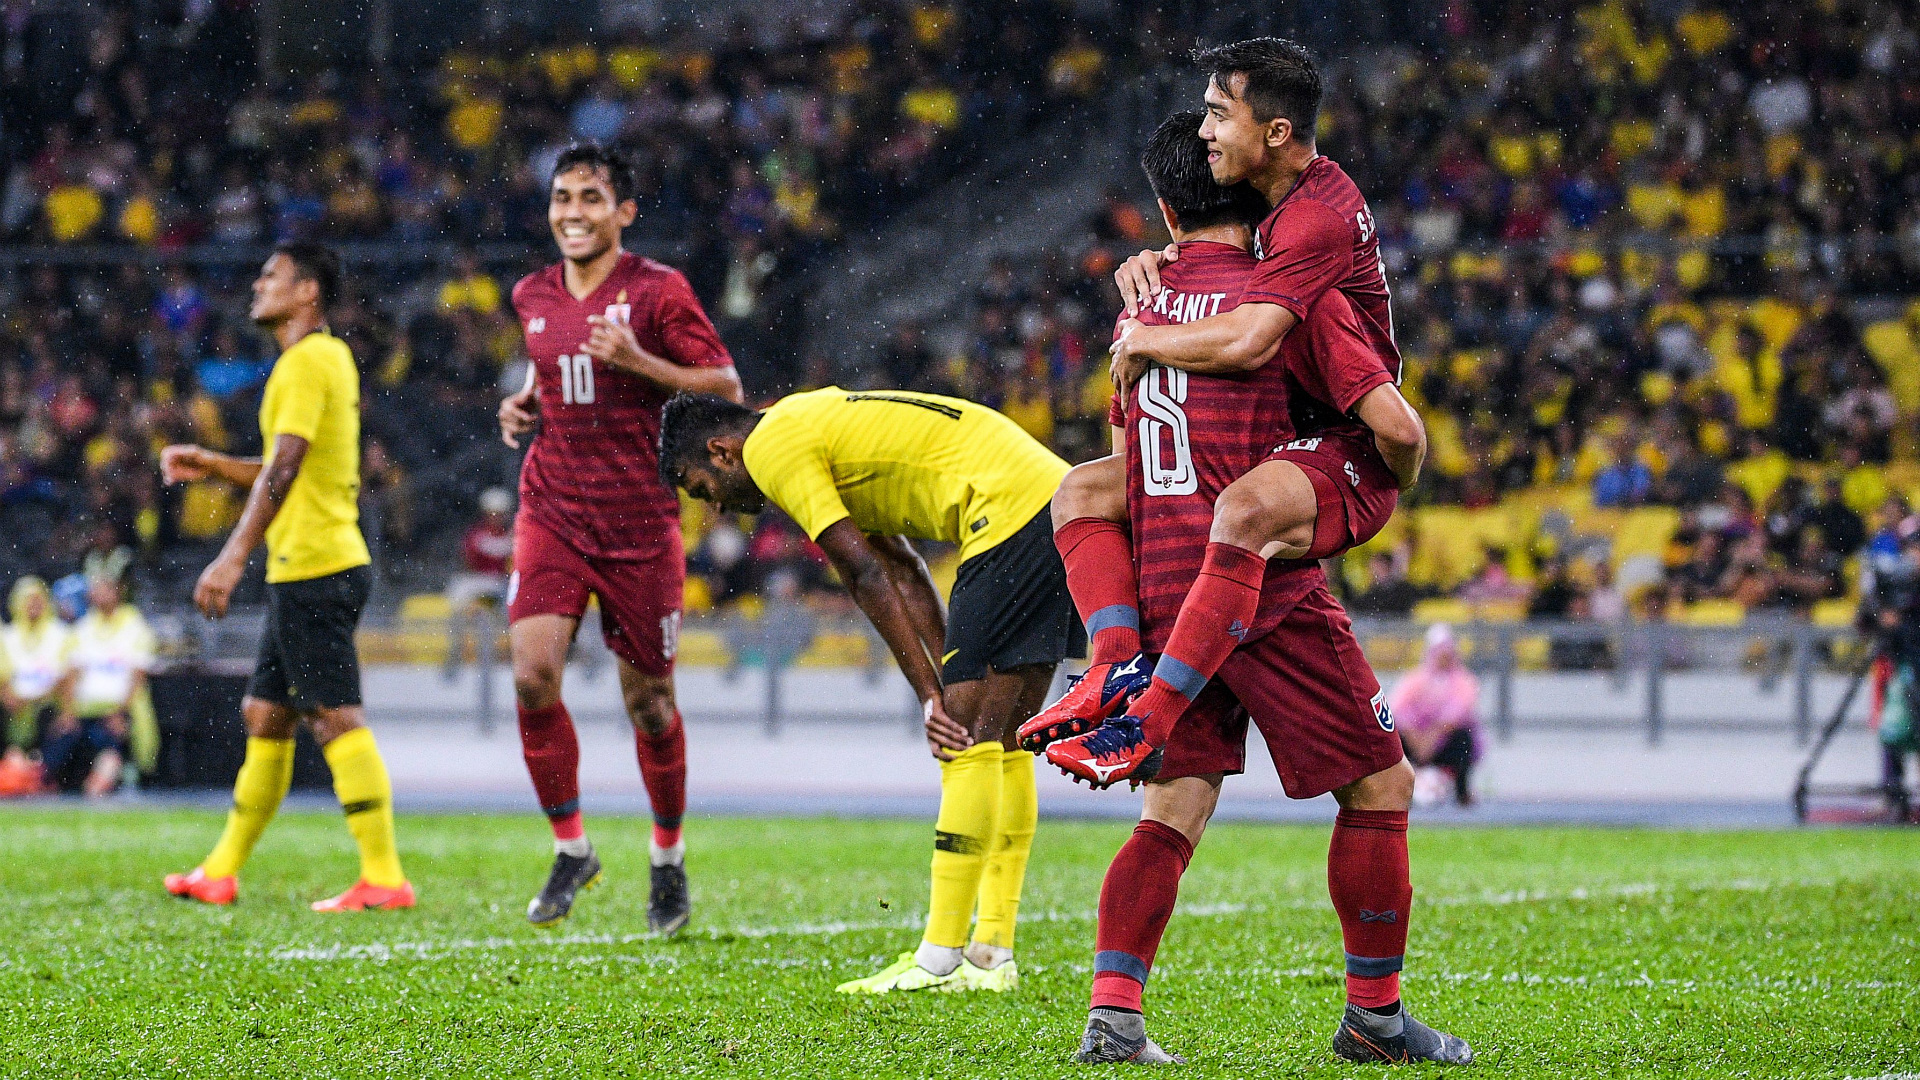 WC Qualifier: Malaysia 2 Thailand 1 - Sumareh fires Tigers back into contention